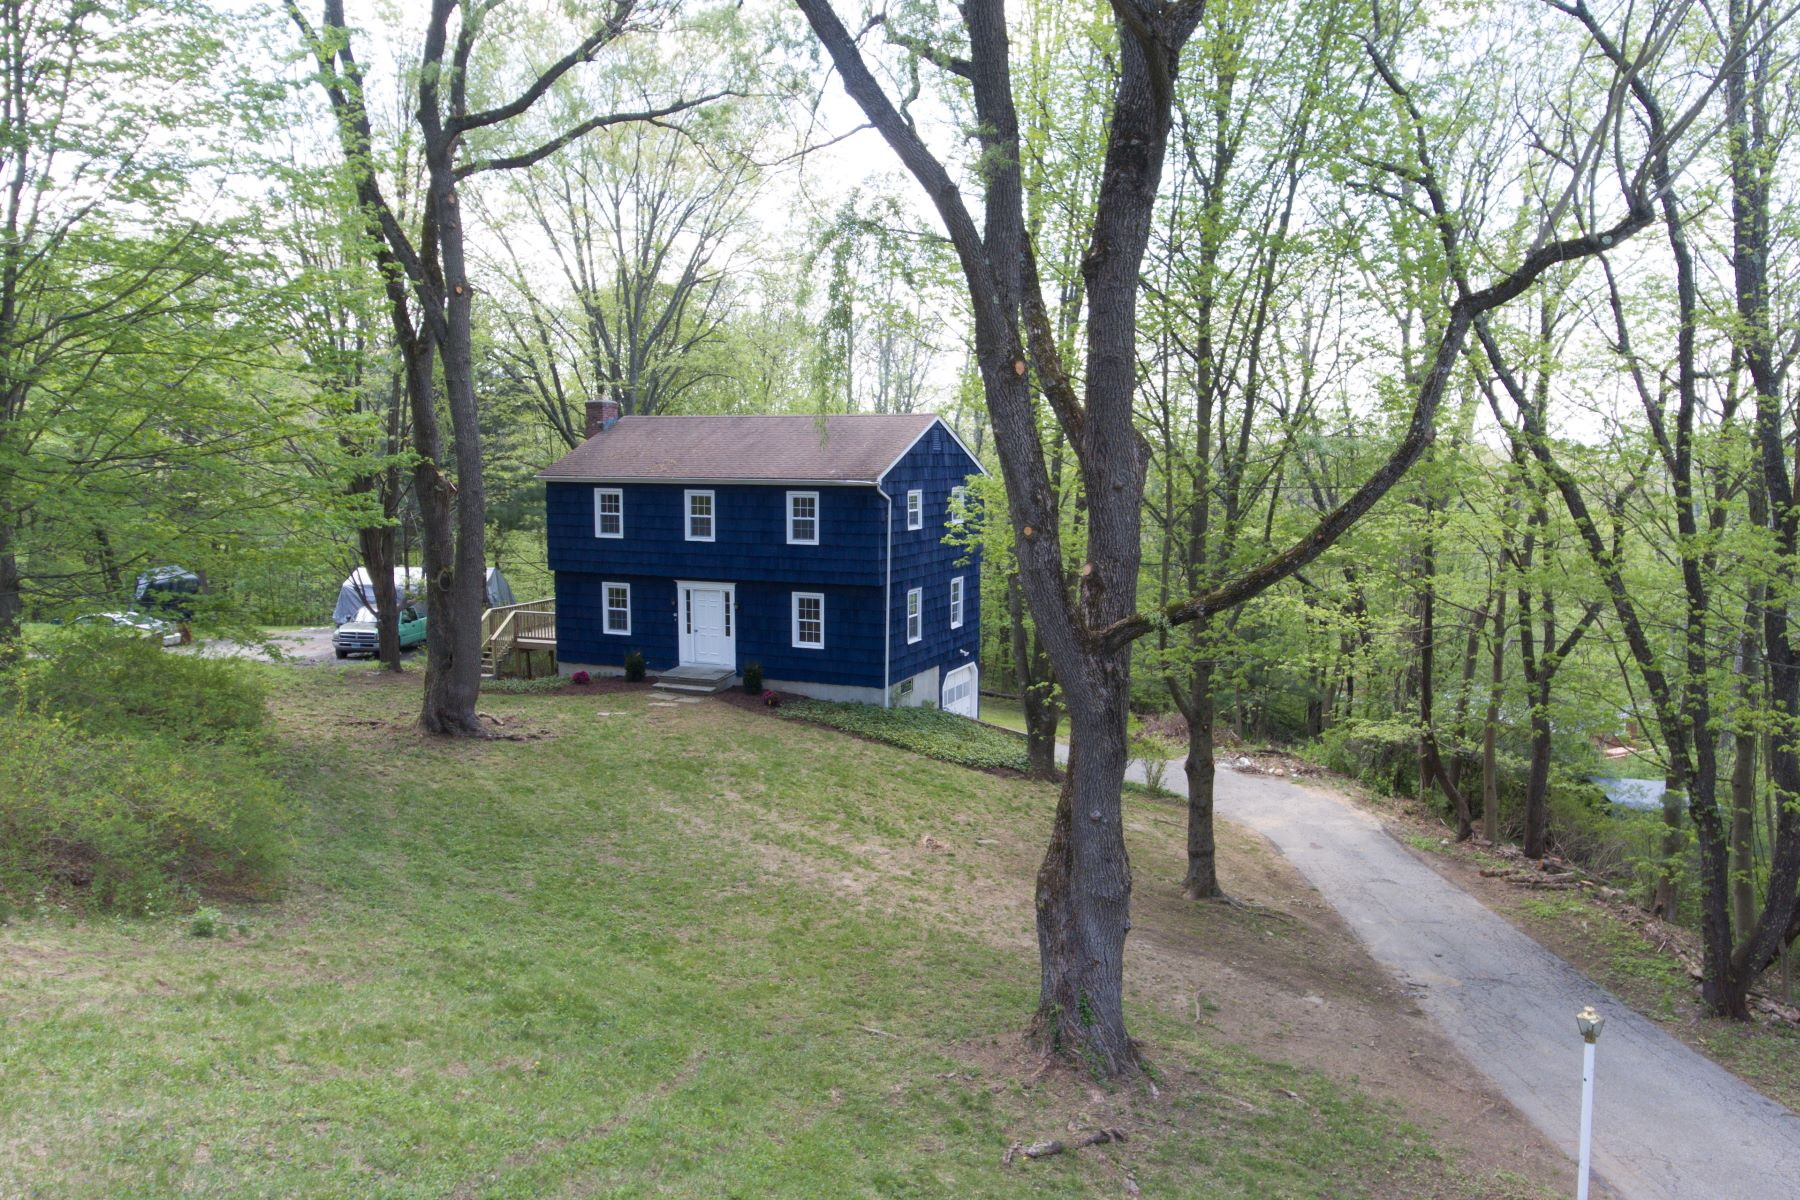 Single Family Home for Sale at Completley Updated 40 Dean Road New Milford, Connecticut 06776 United States